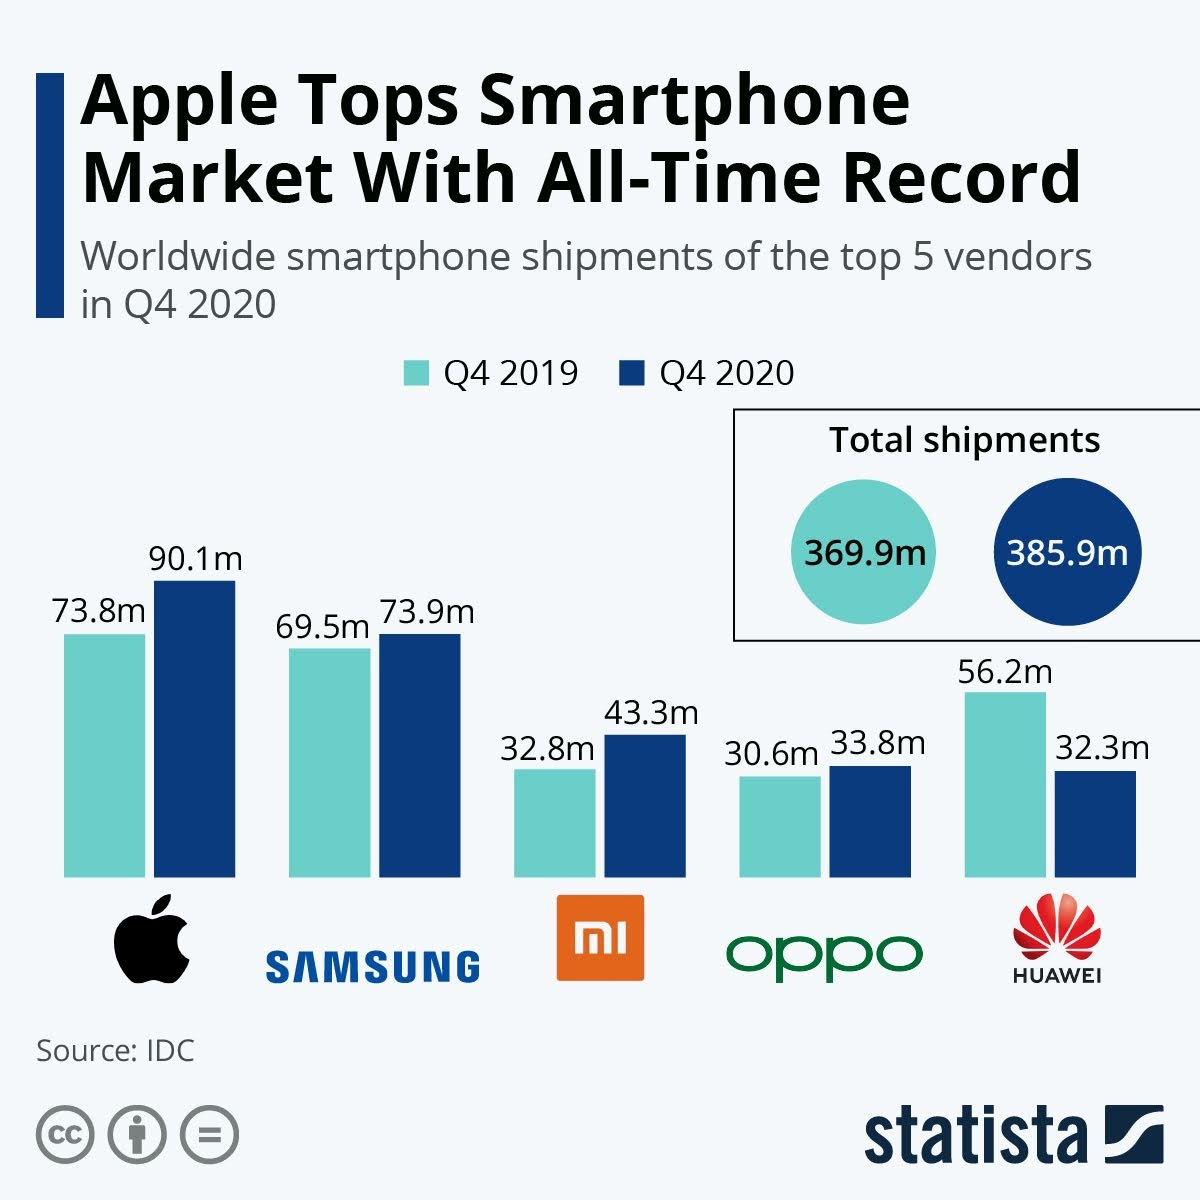 apple-tops-smartphone-market-with-all-time-record-infographic